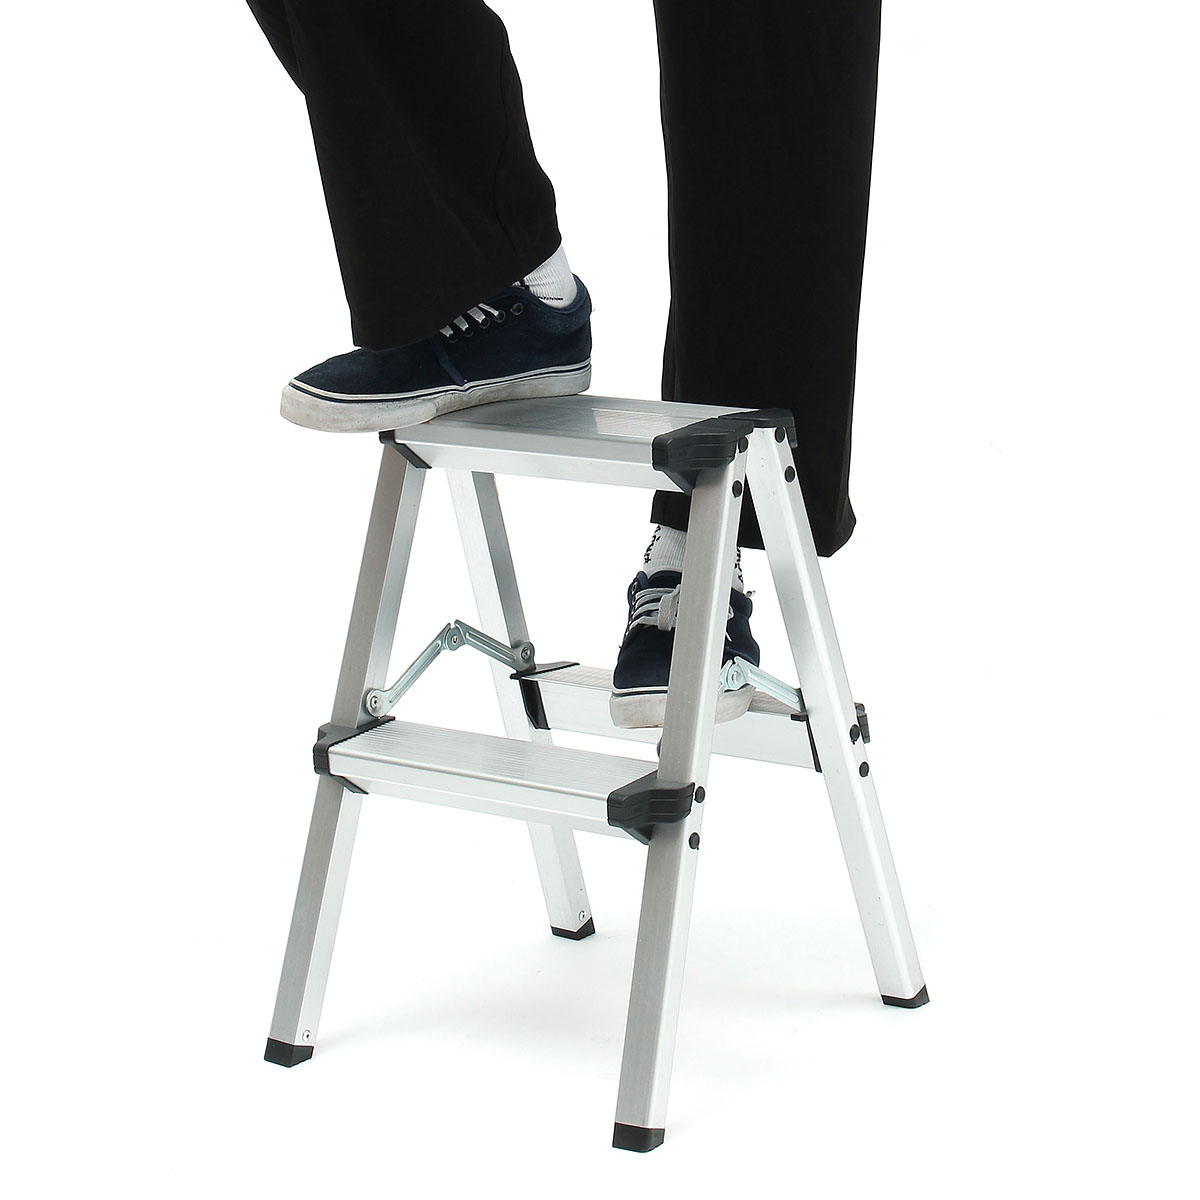 Peachy Best Top 10 2 Step Ladders List And Get Free Shipping K42Feklc Lamtechconsult Wood Chair Design Ideas Lamtechconsultcom